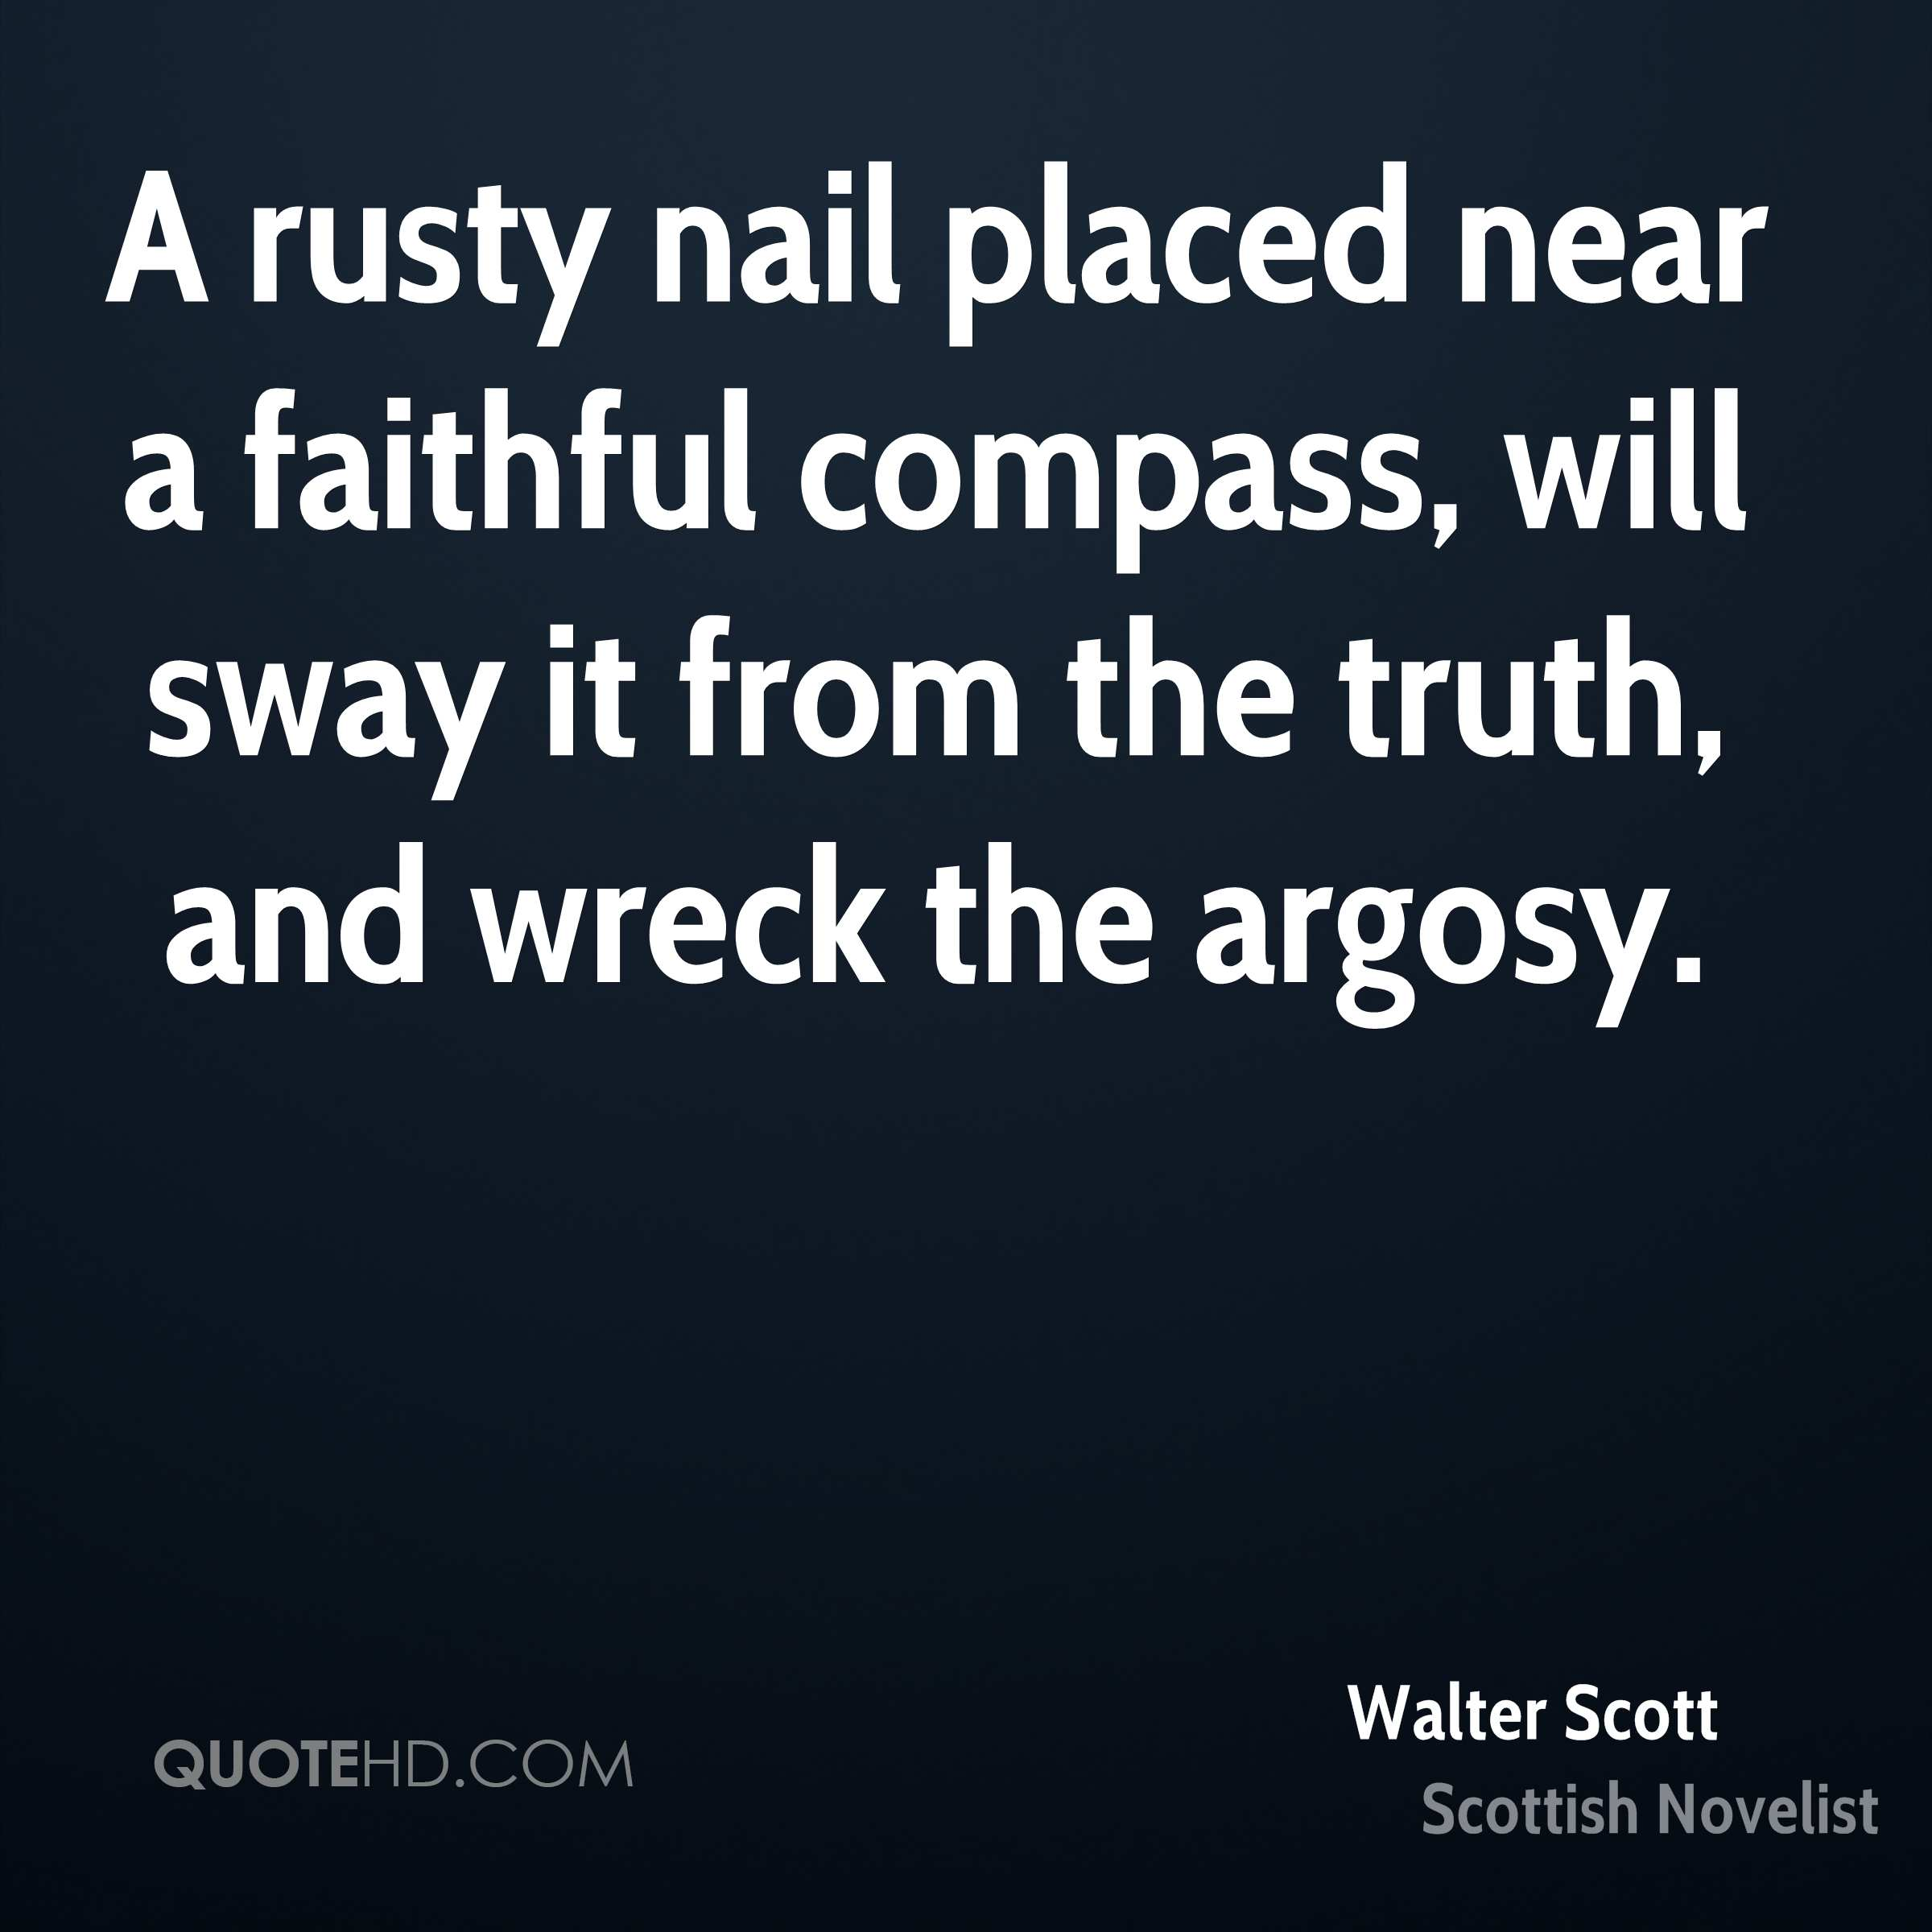 A rusty nail placed near a faithful compass, will sway it from the truth, and wreck the argosy.